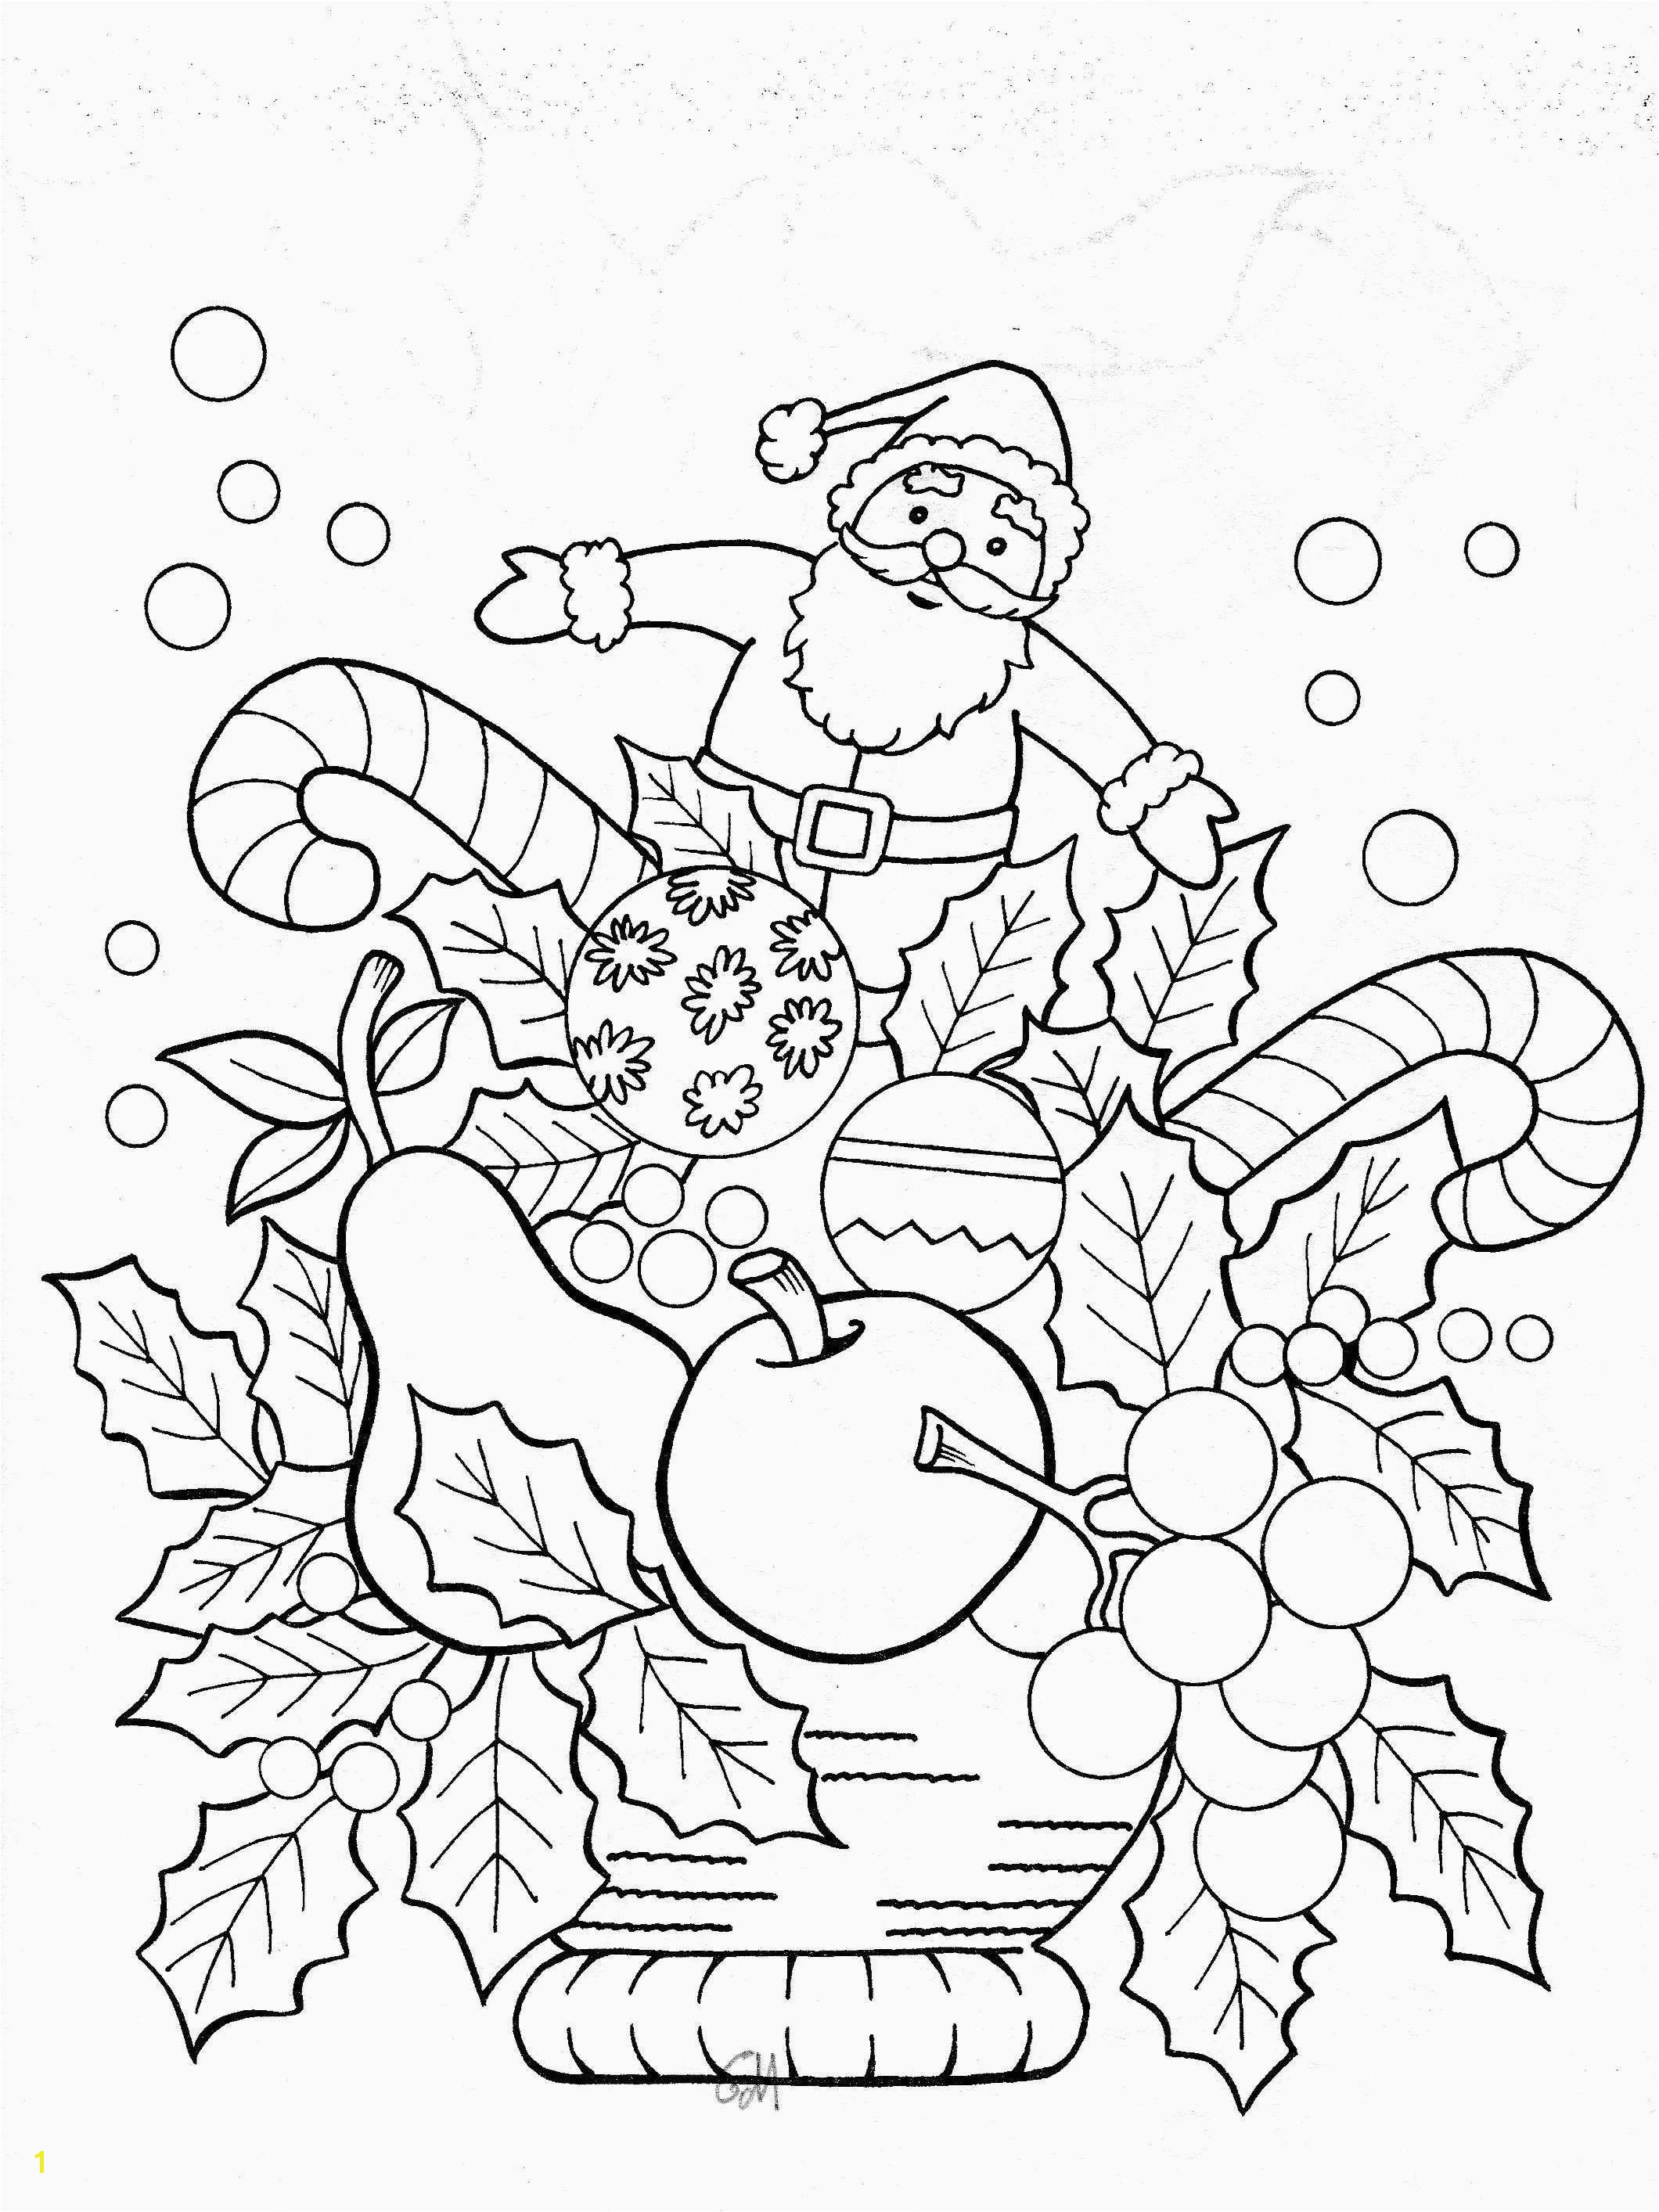 Disneychristmas Coloring Pages 36 Disney Christmas Color Pages